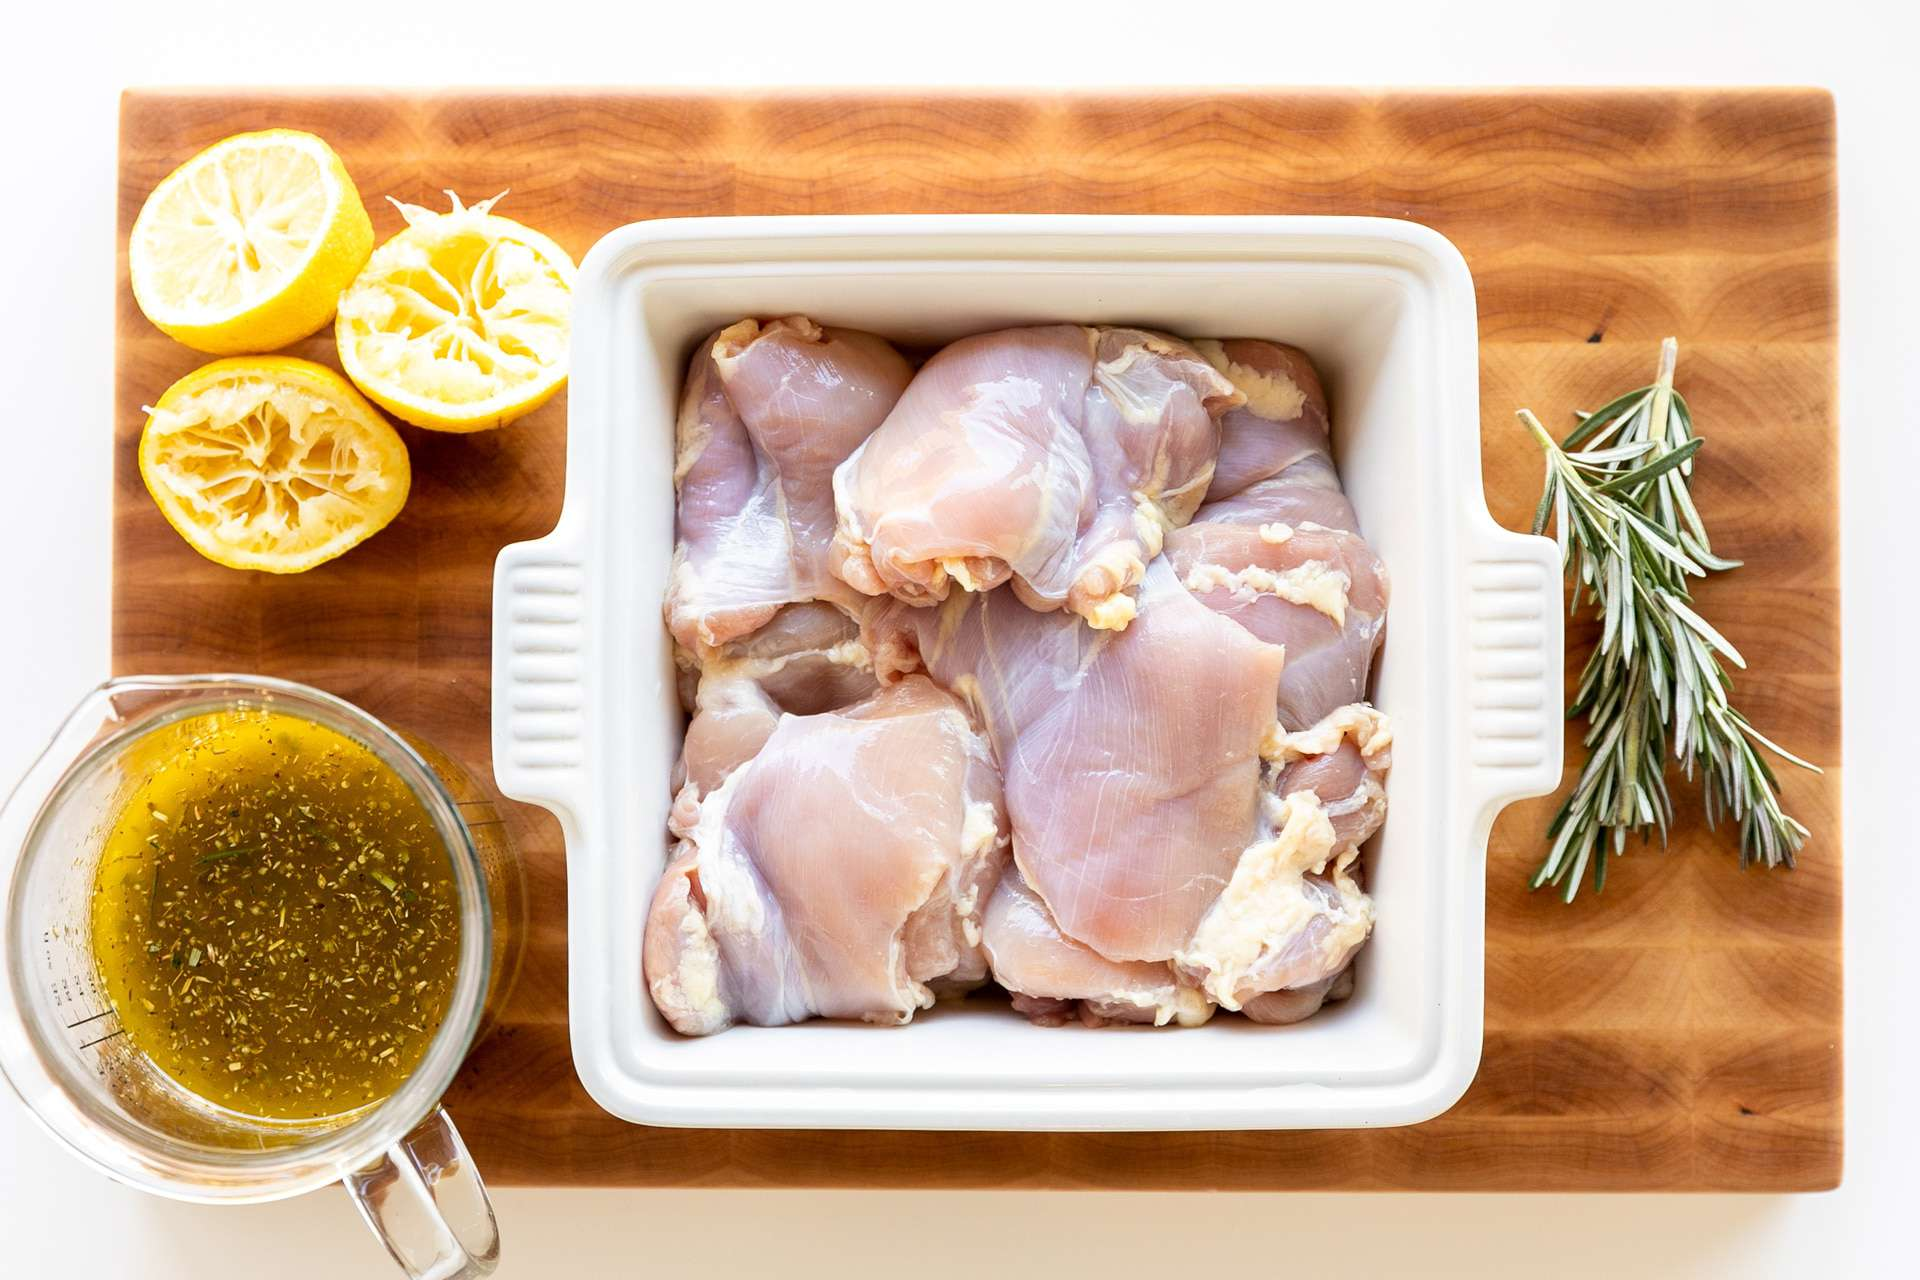 Greek chicken marinade in le creuset casserole dish